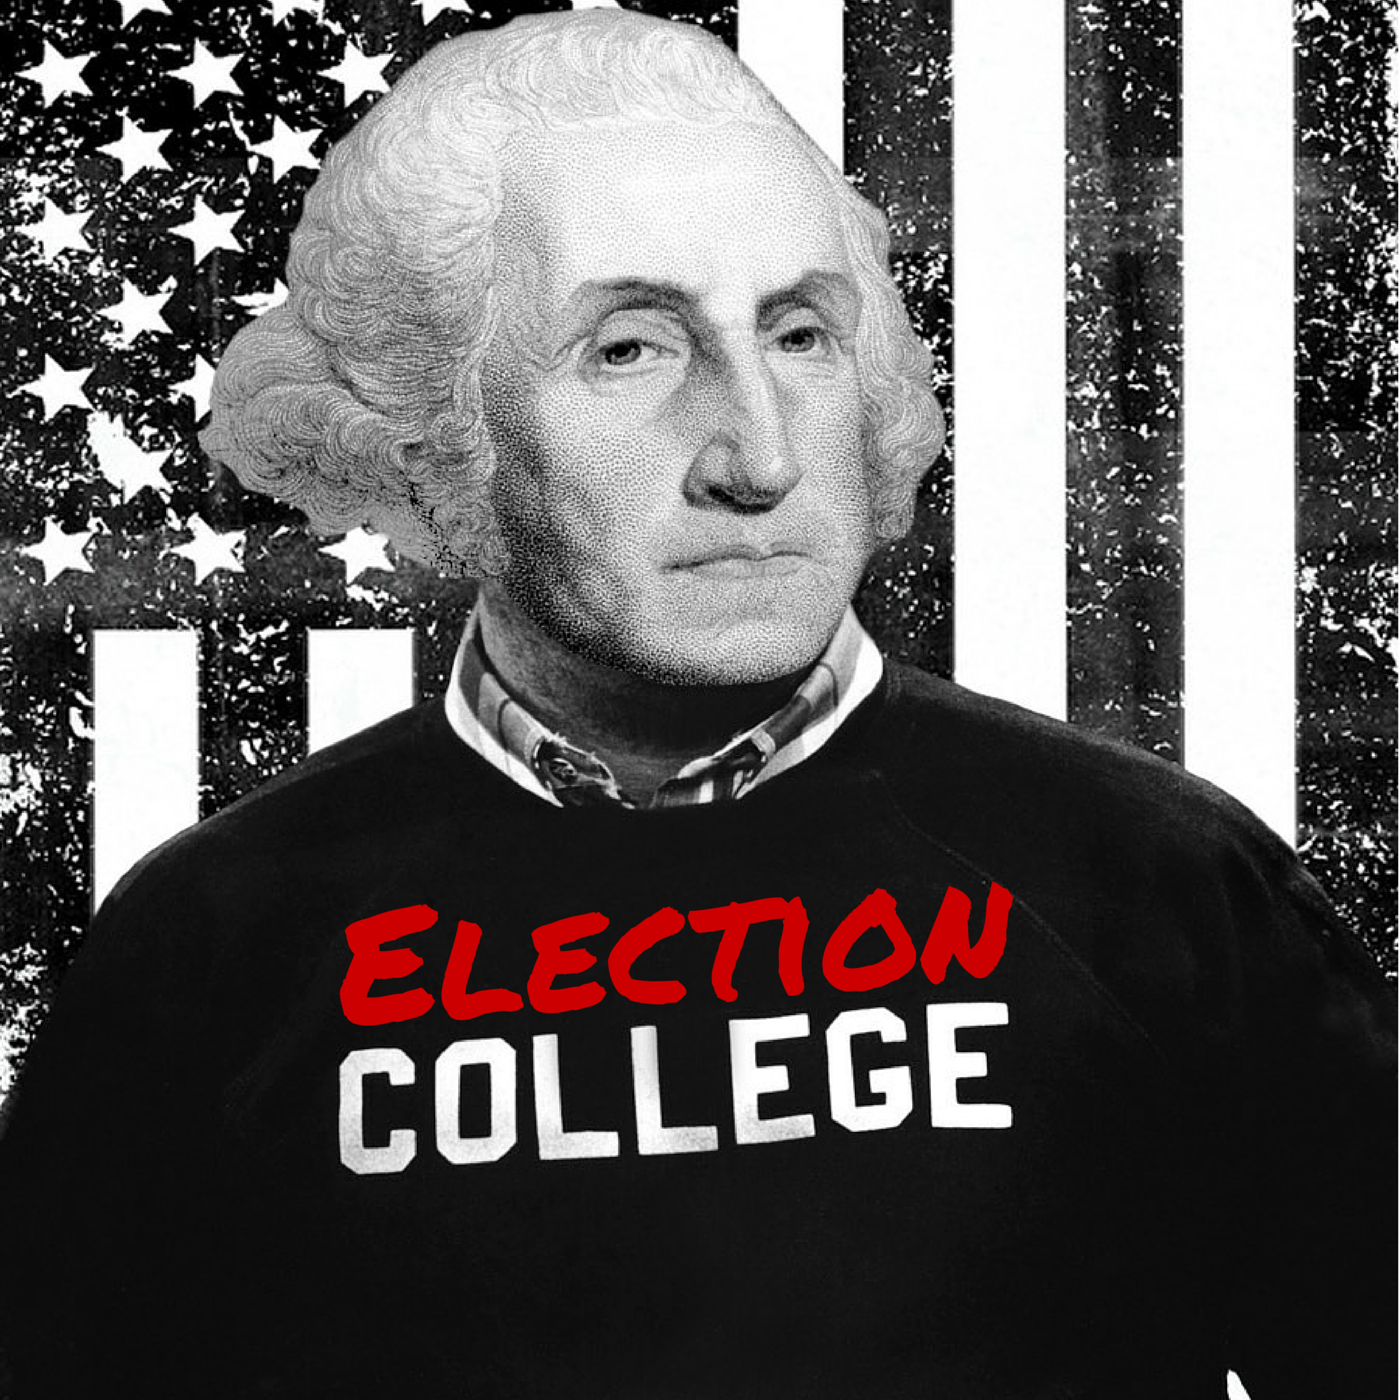 Millard Fillmore - Part 2 | Episode #194 | Election College: United States Presidential Election History